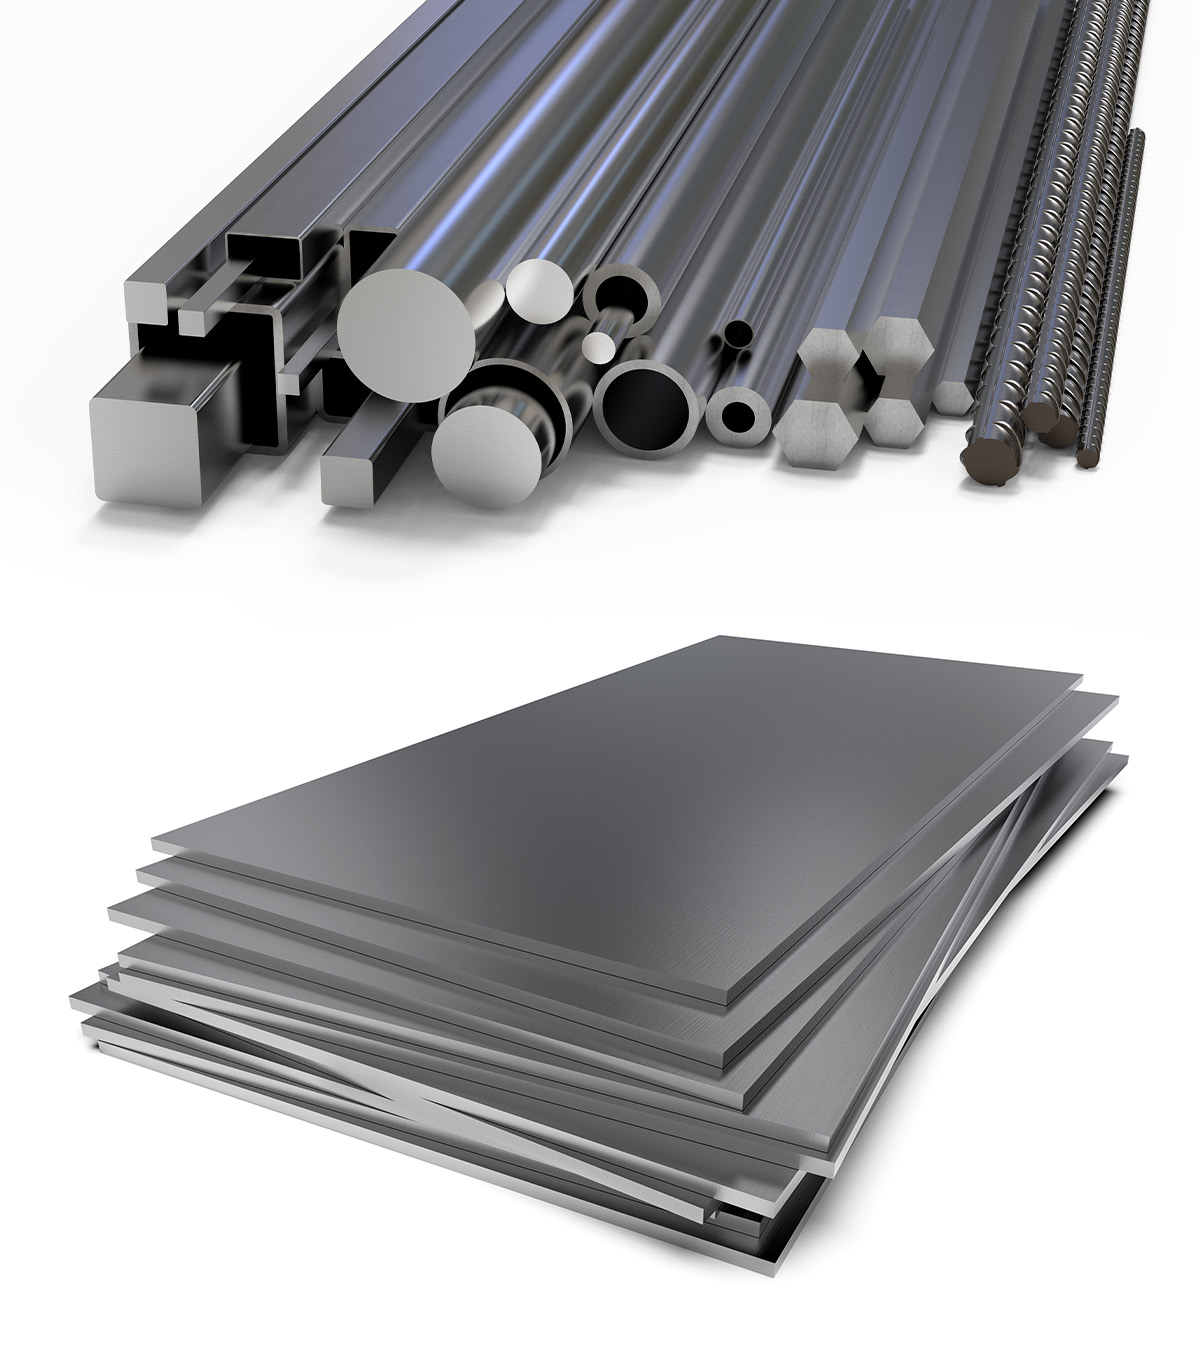 Steel tubes, rods and sheets